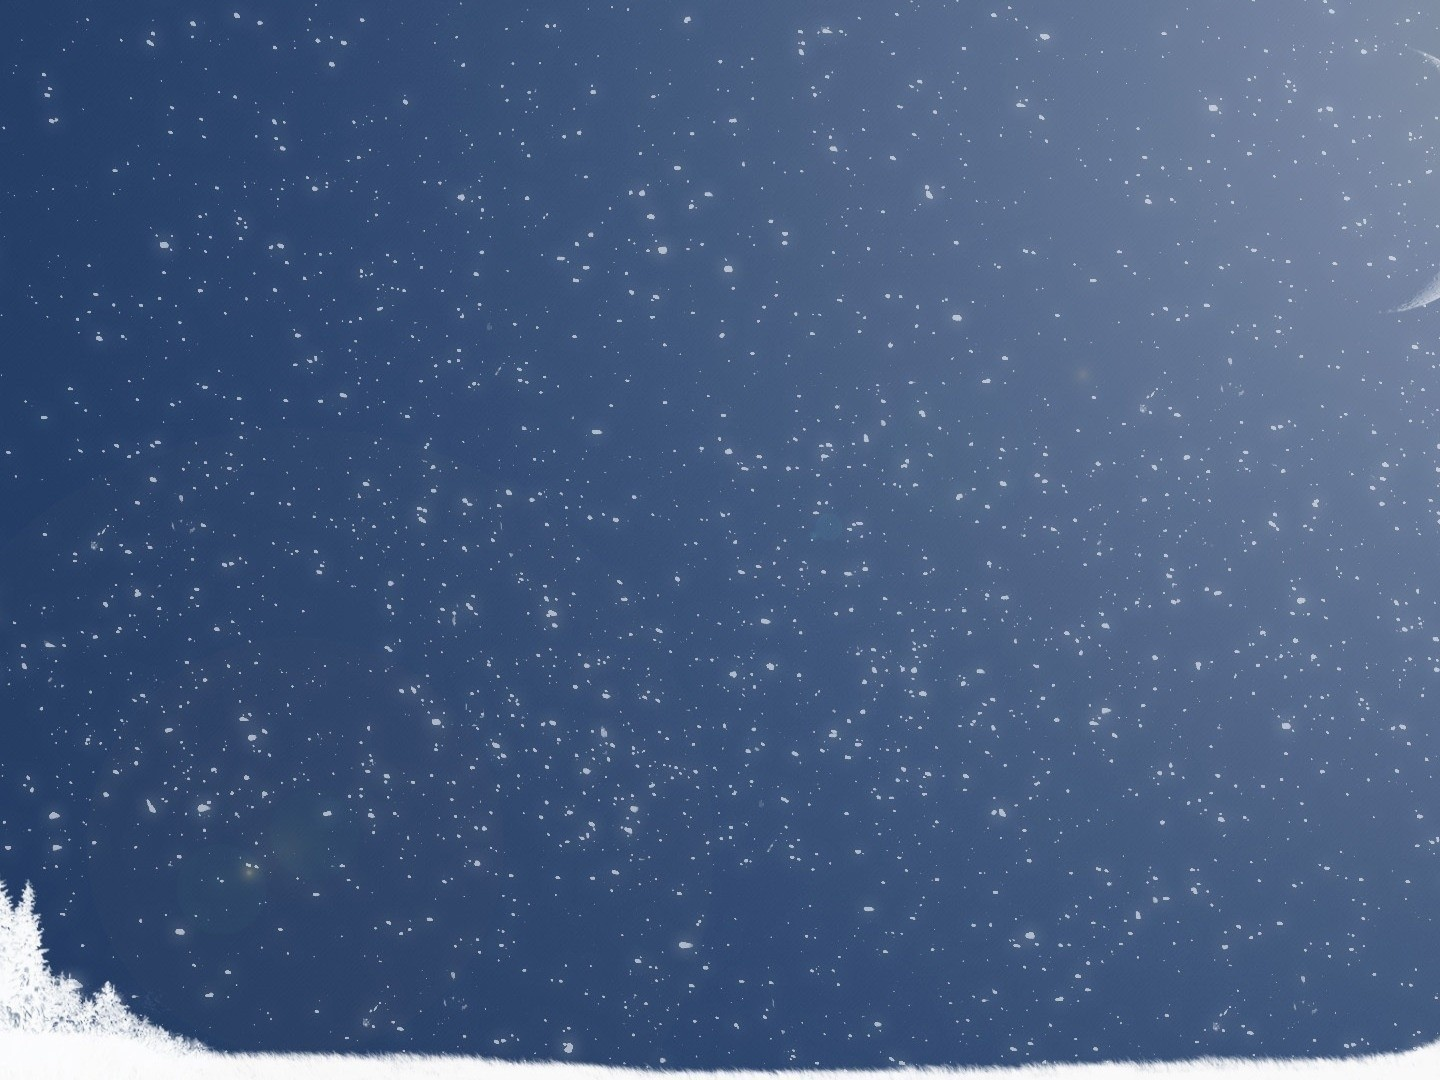 Falling Snow Wallpaper Iphone 5 Night Snow Landscapes Winter Wallpaper Allwallpaper In